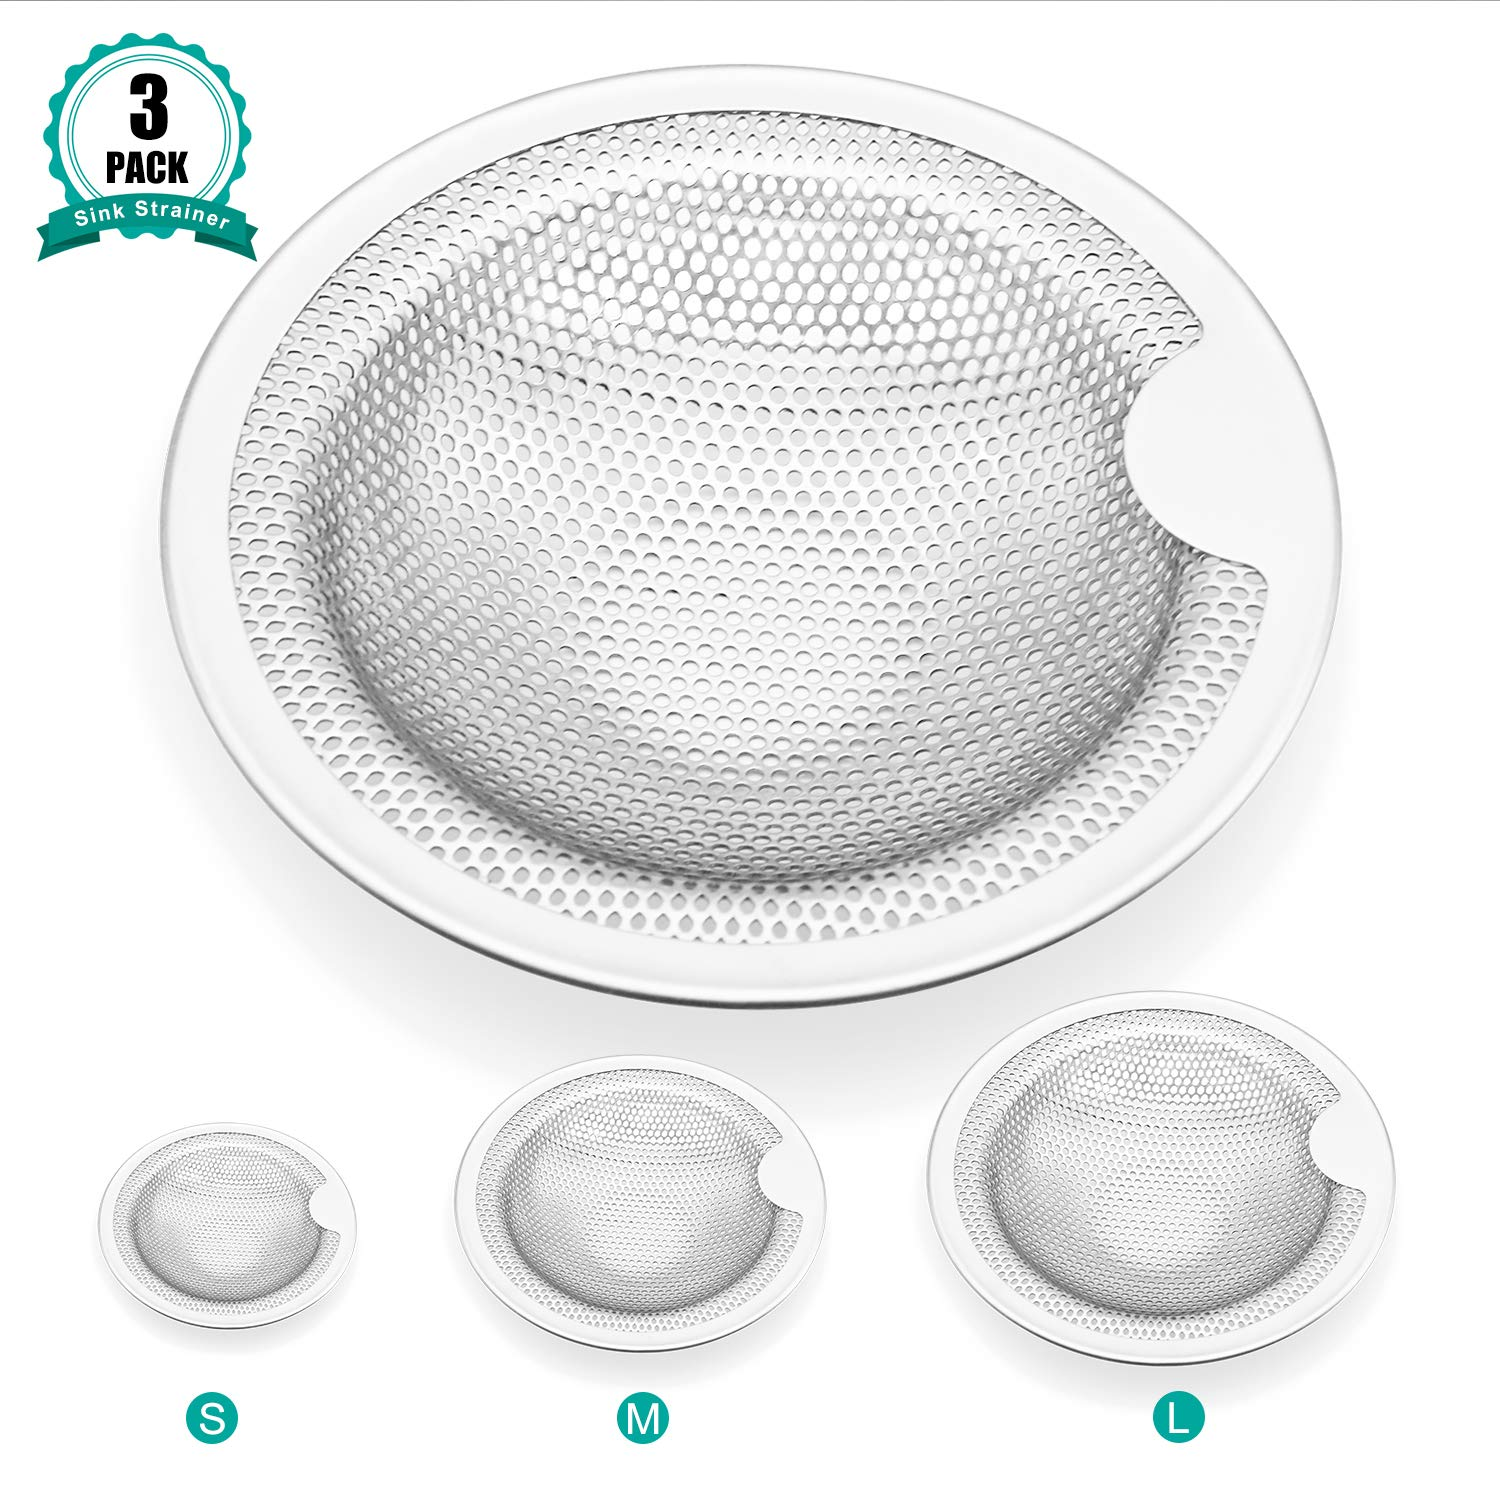 Sink Strainer,Hat-Design Stainless Steel Sink Drain Cover Garbage Disposal Filter,S/M/L set for Washbasin Bath and Kitchen